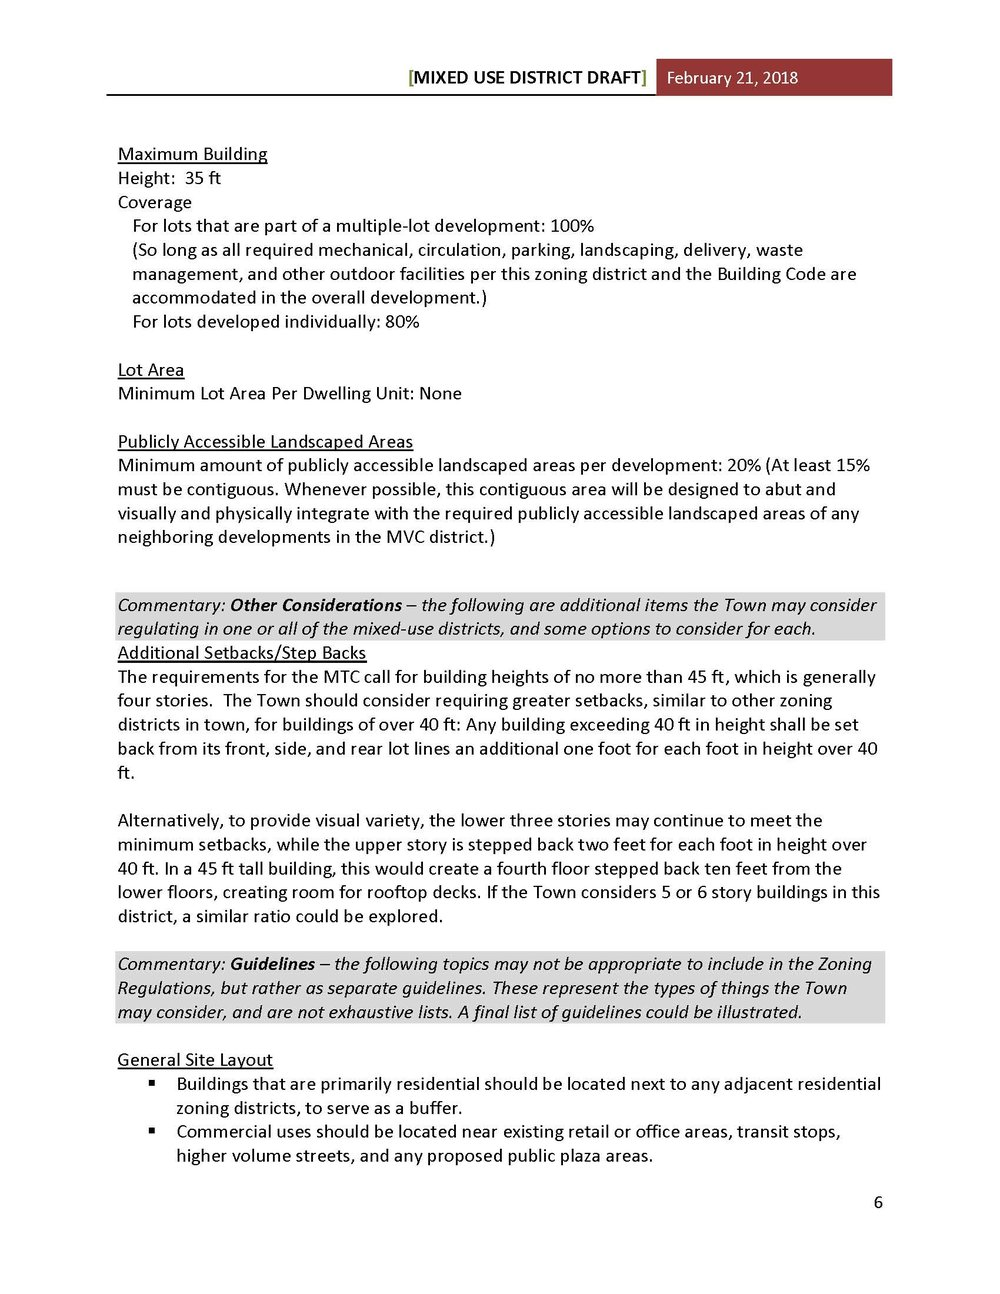 Mixed-Use Descriptions and Dimensions - Draft - 2-21-18_Page_6.jpg